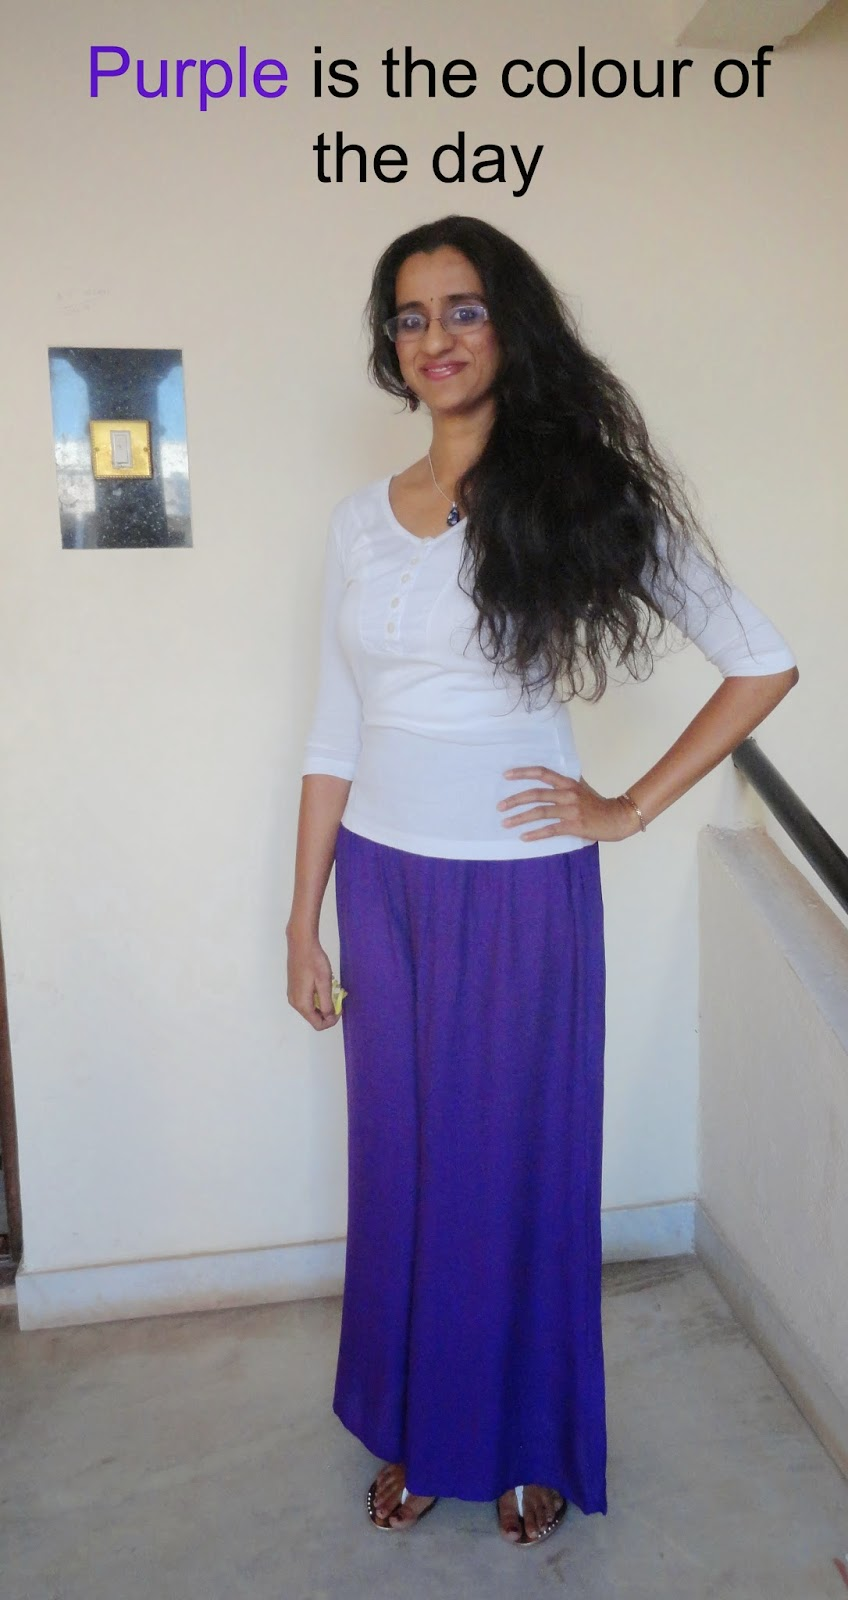 OOTD: Easy Breezy Purple palazzo pants  image